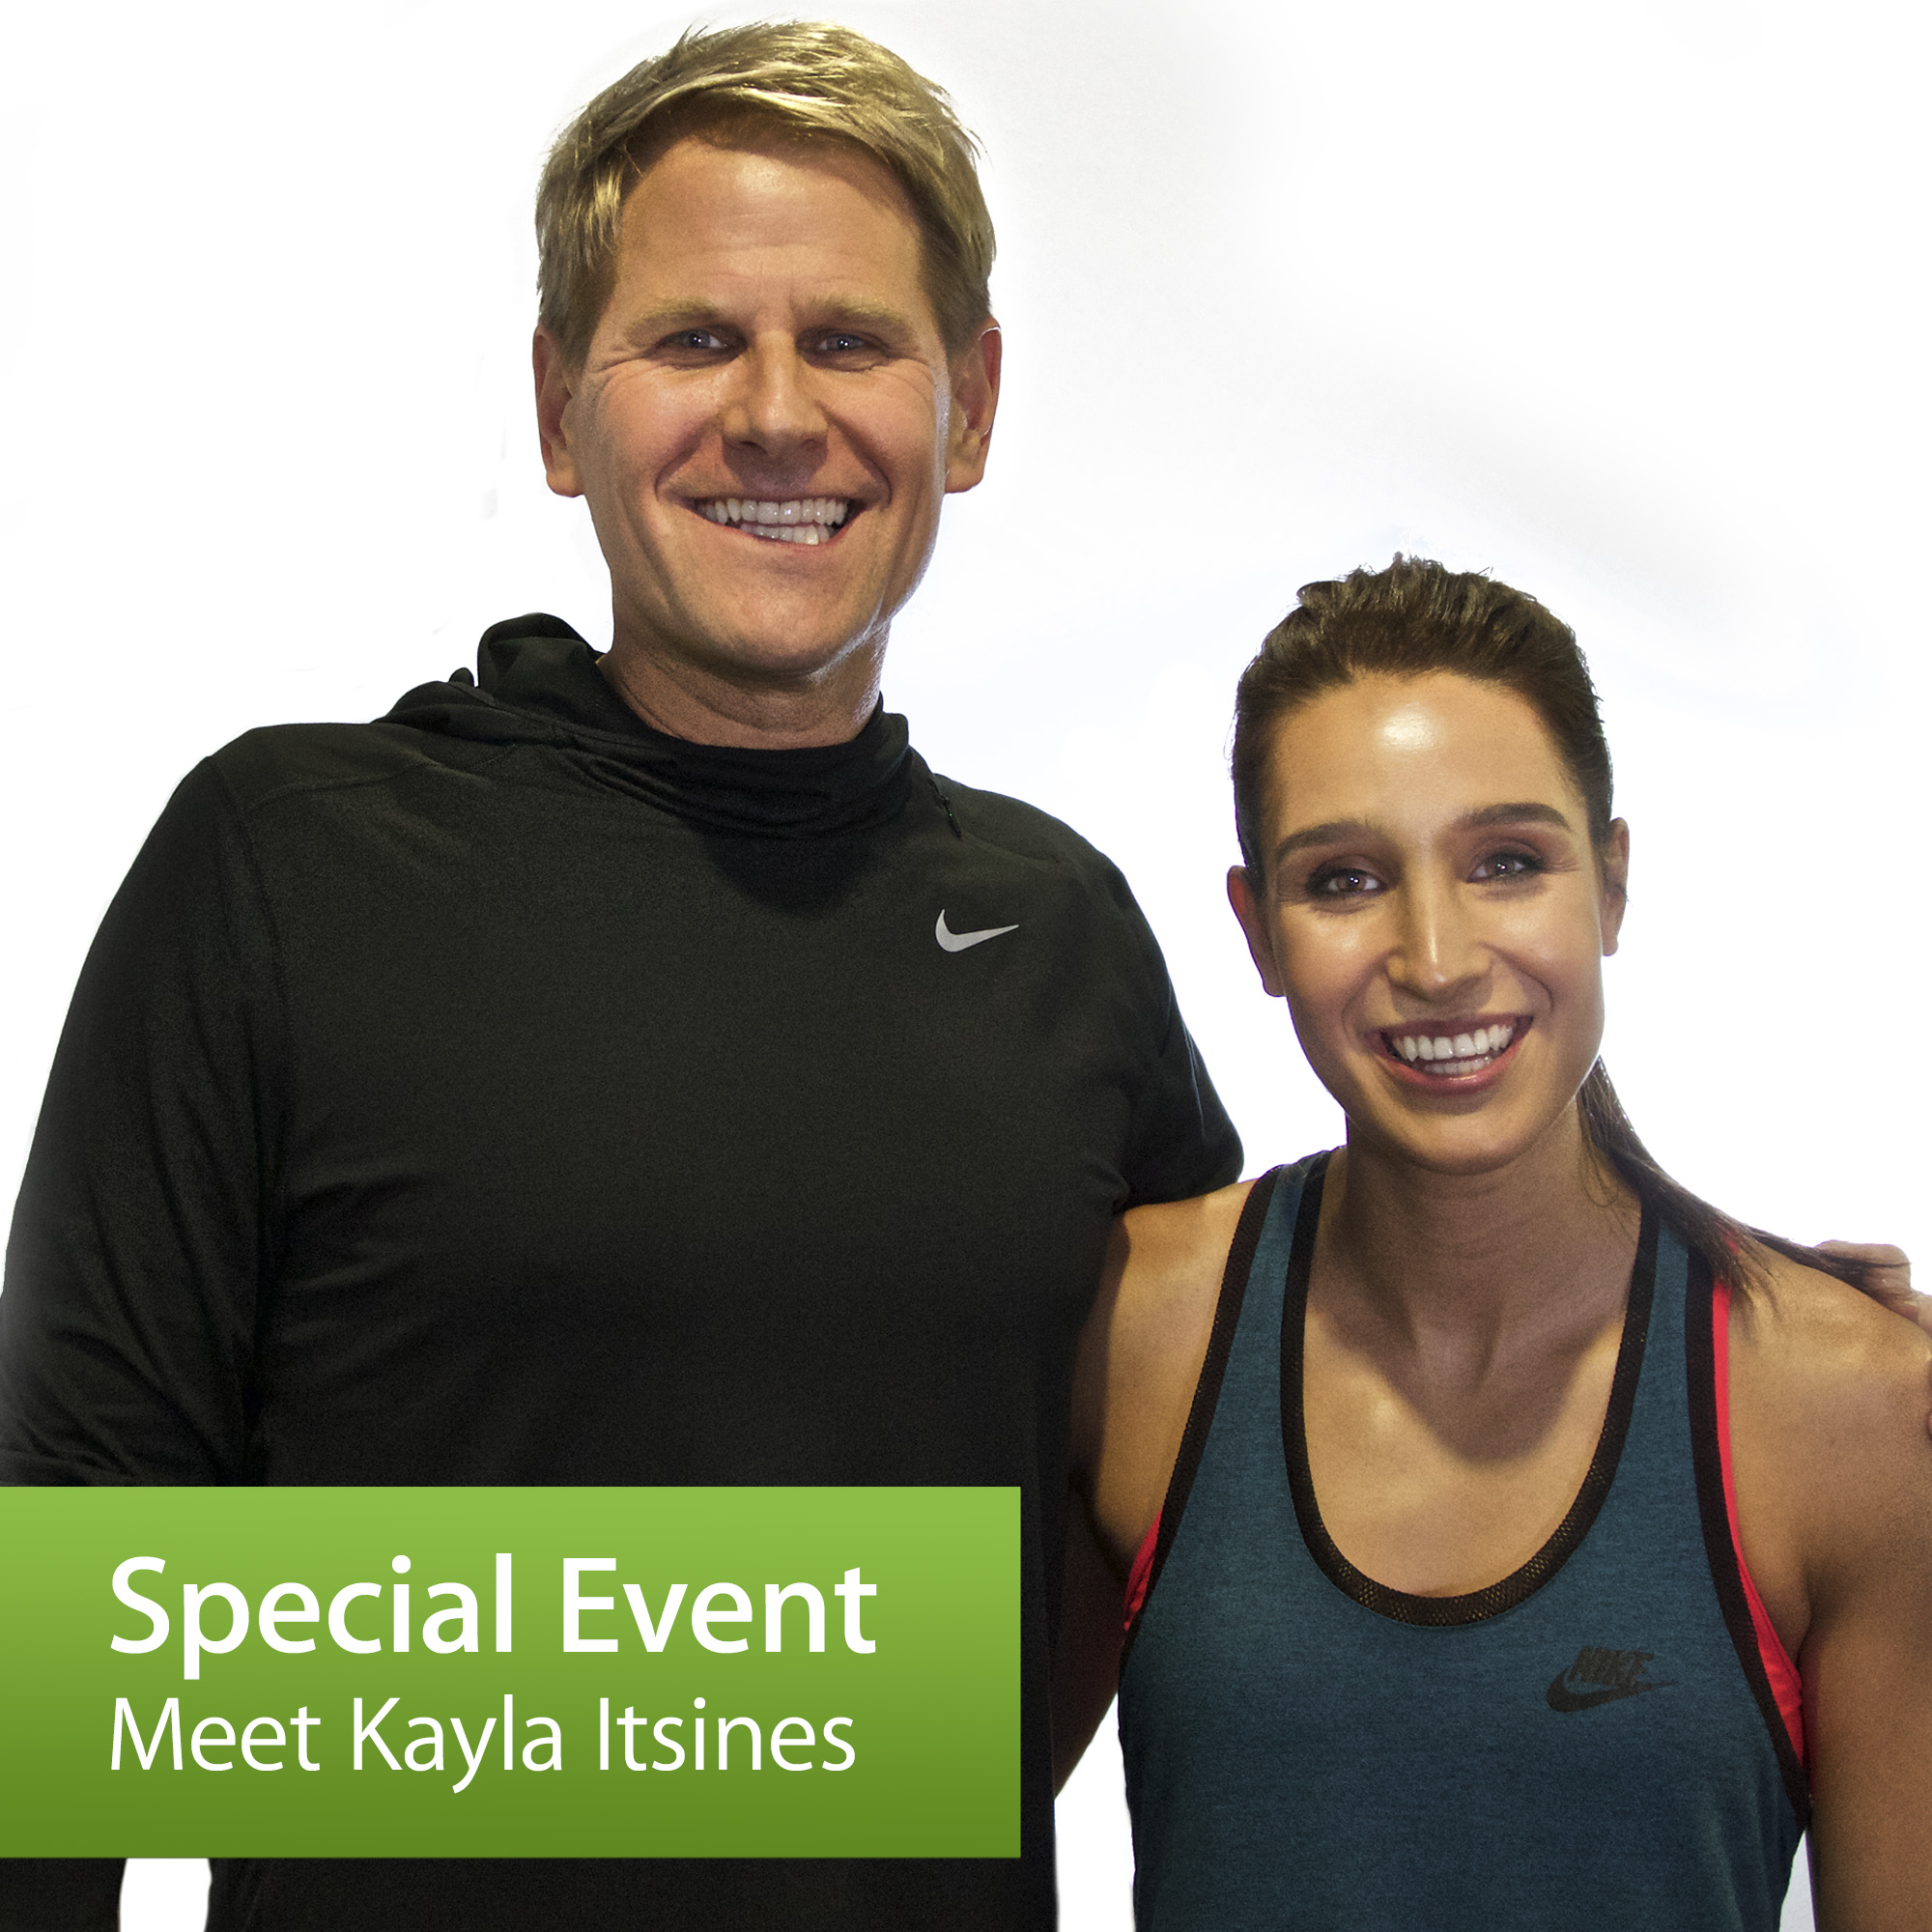 Kayla Itsines: Meet the Fitness Star